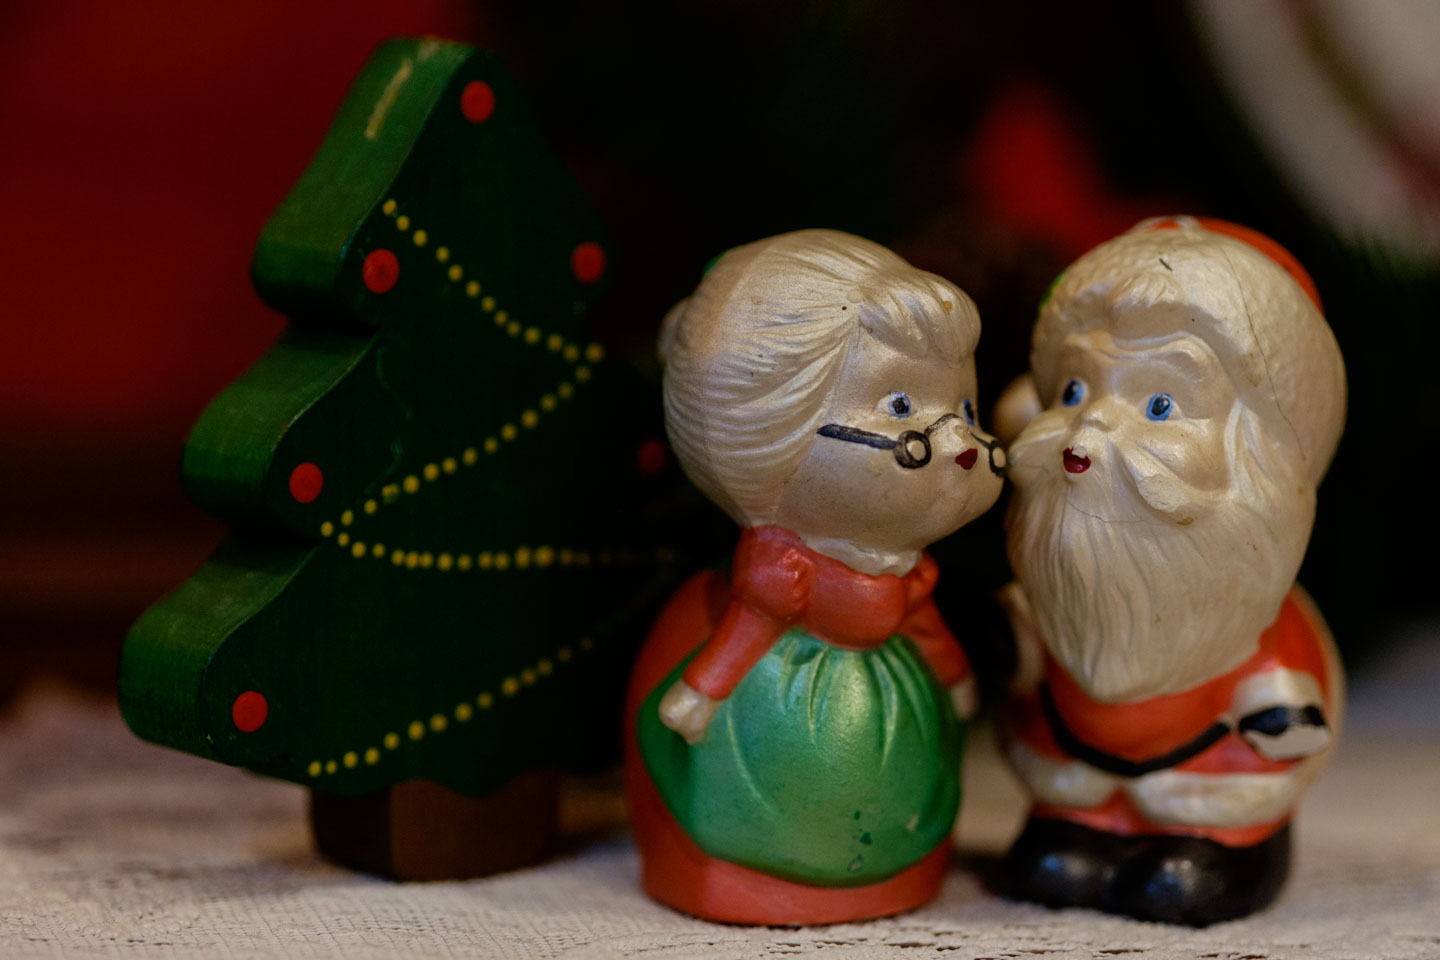 Olde tyme Christmas decorations